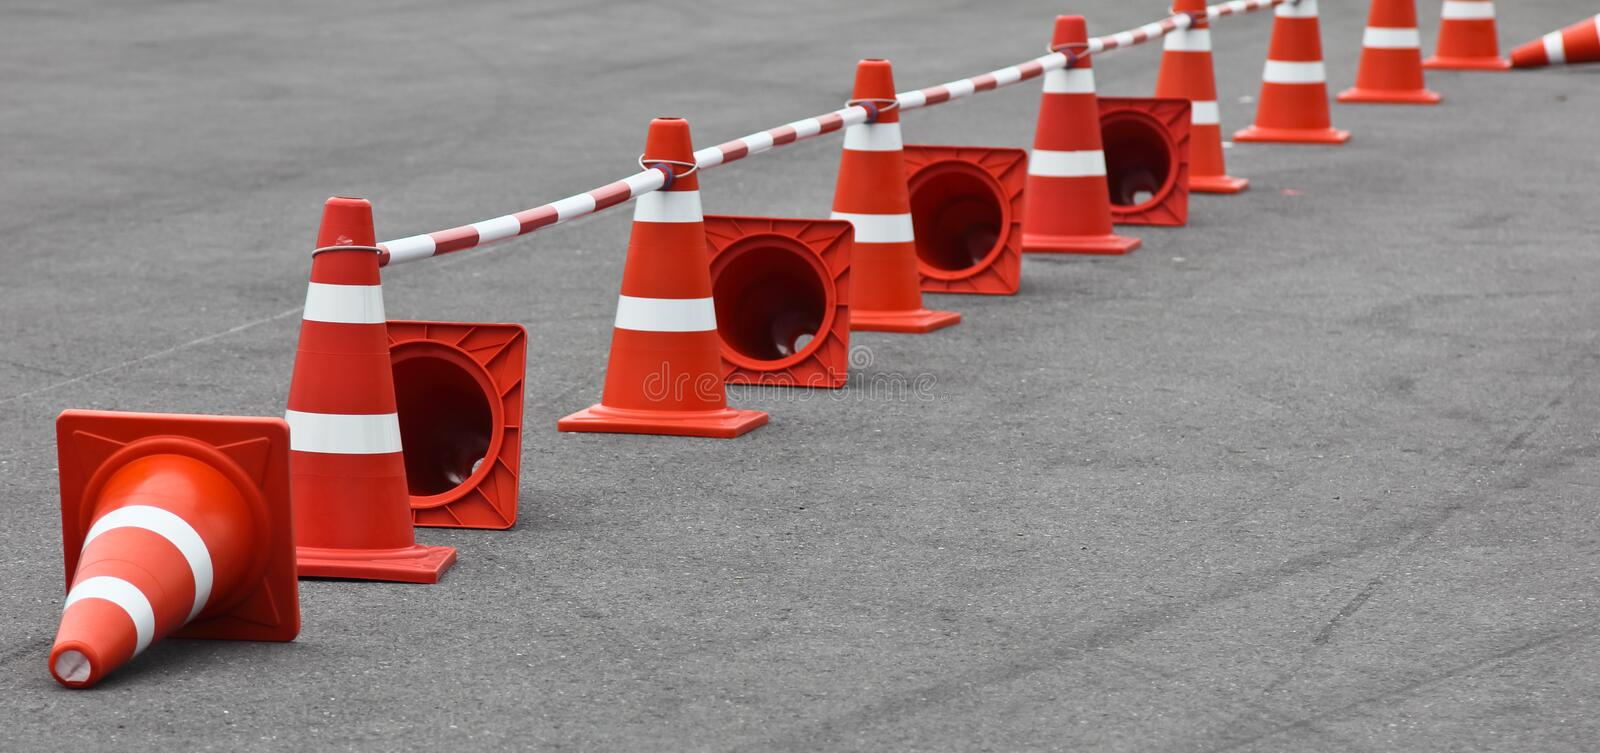 Traffic cone. Background with traffic cone on road track royalty free stock photo